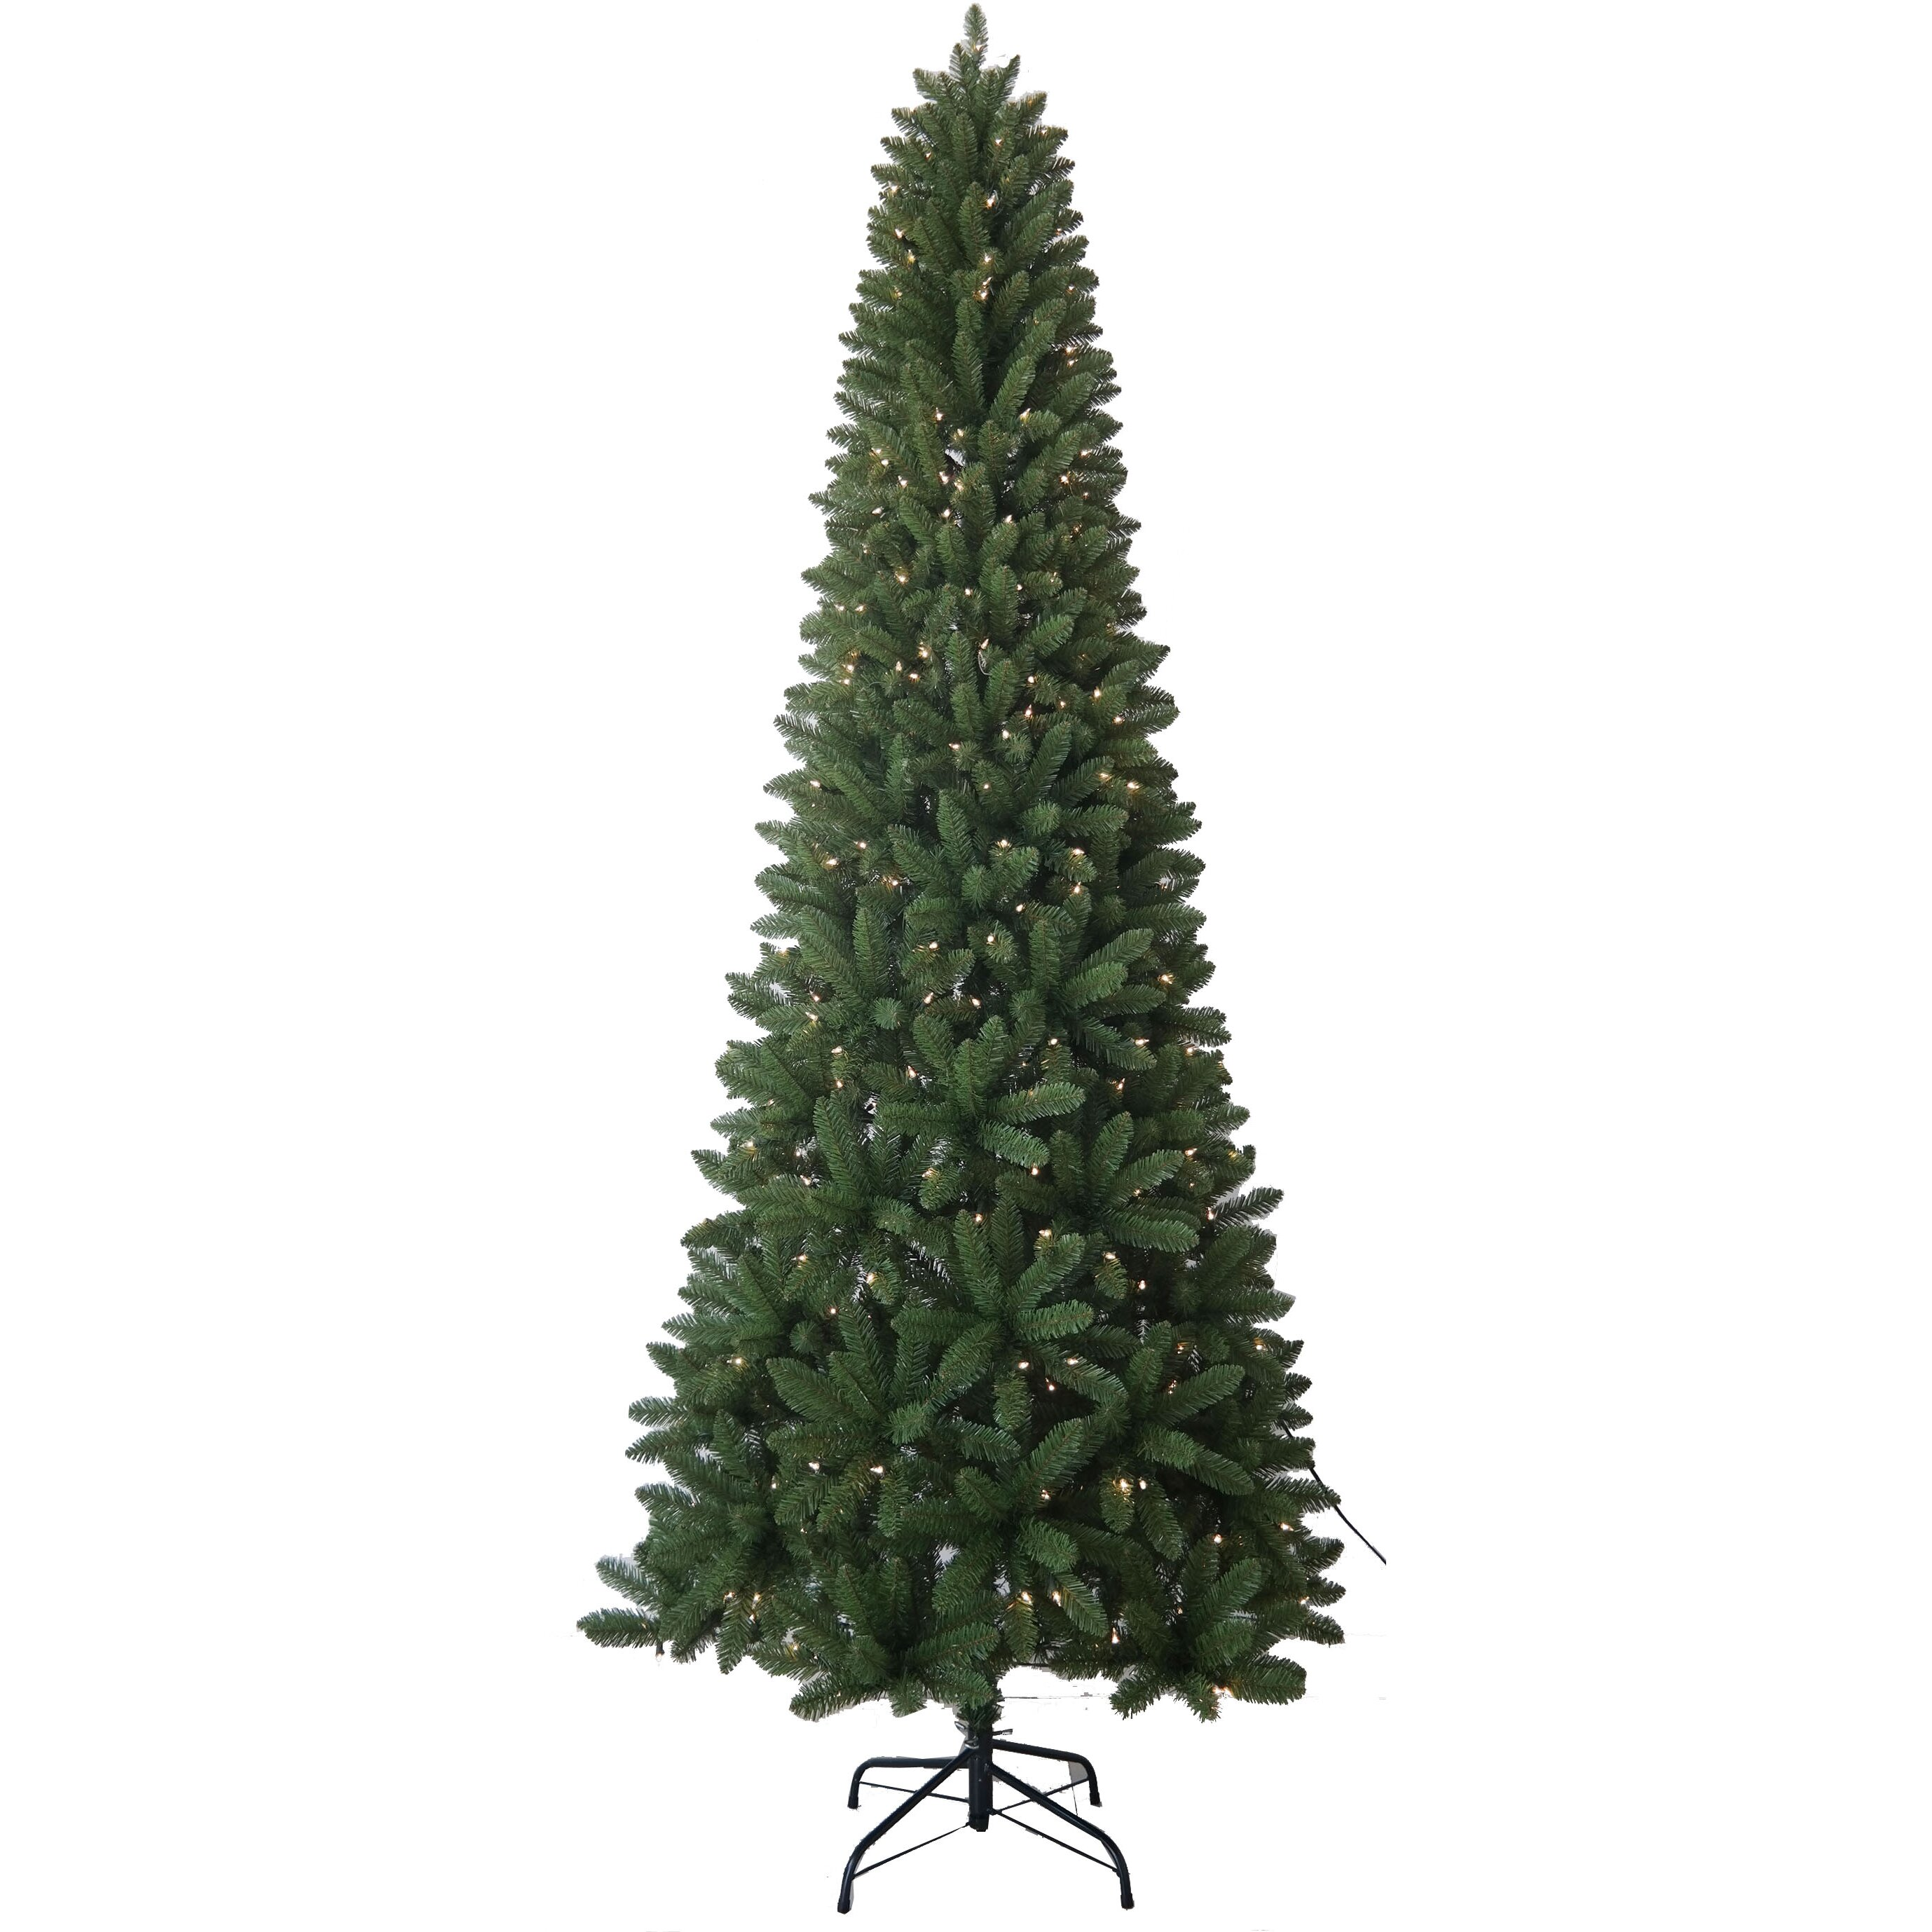 Santa 39 S Workshop 9 39 Slim Artificial Christmas Tree With